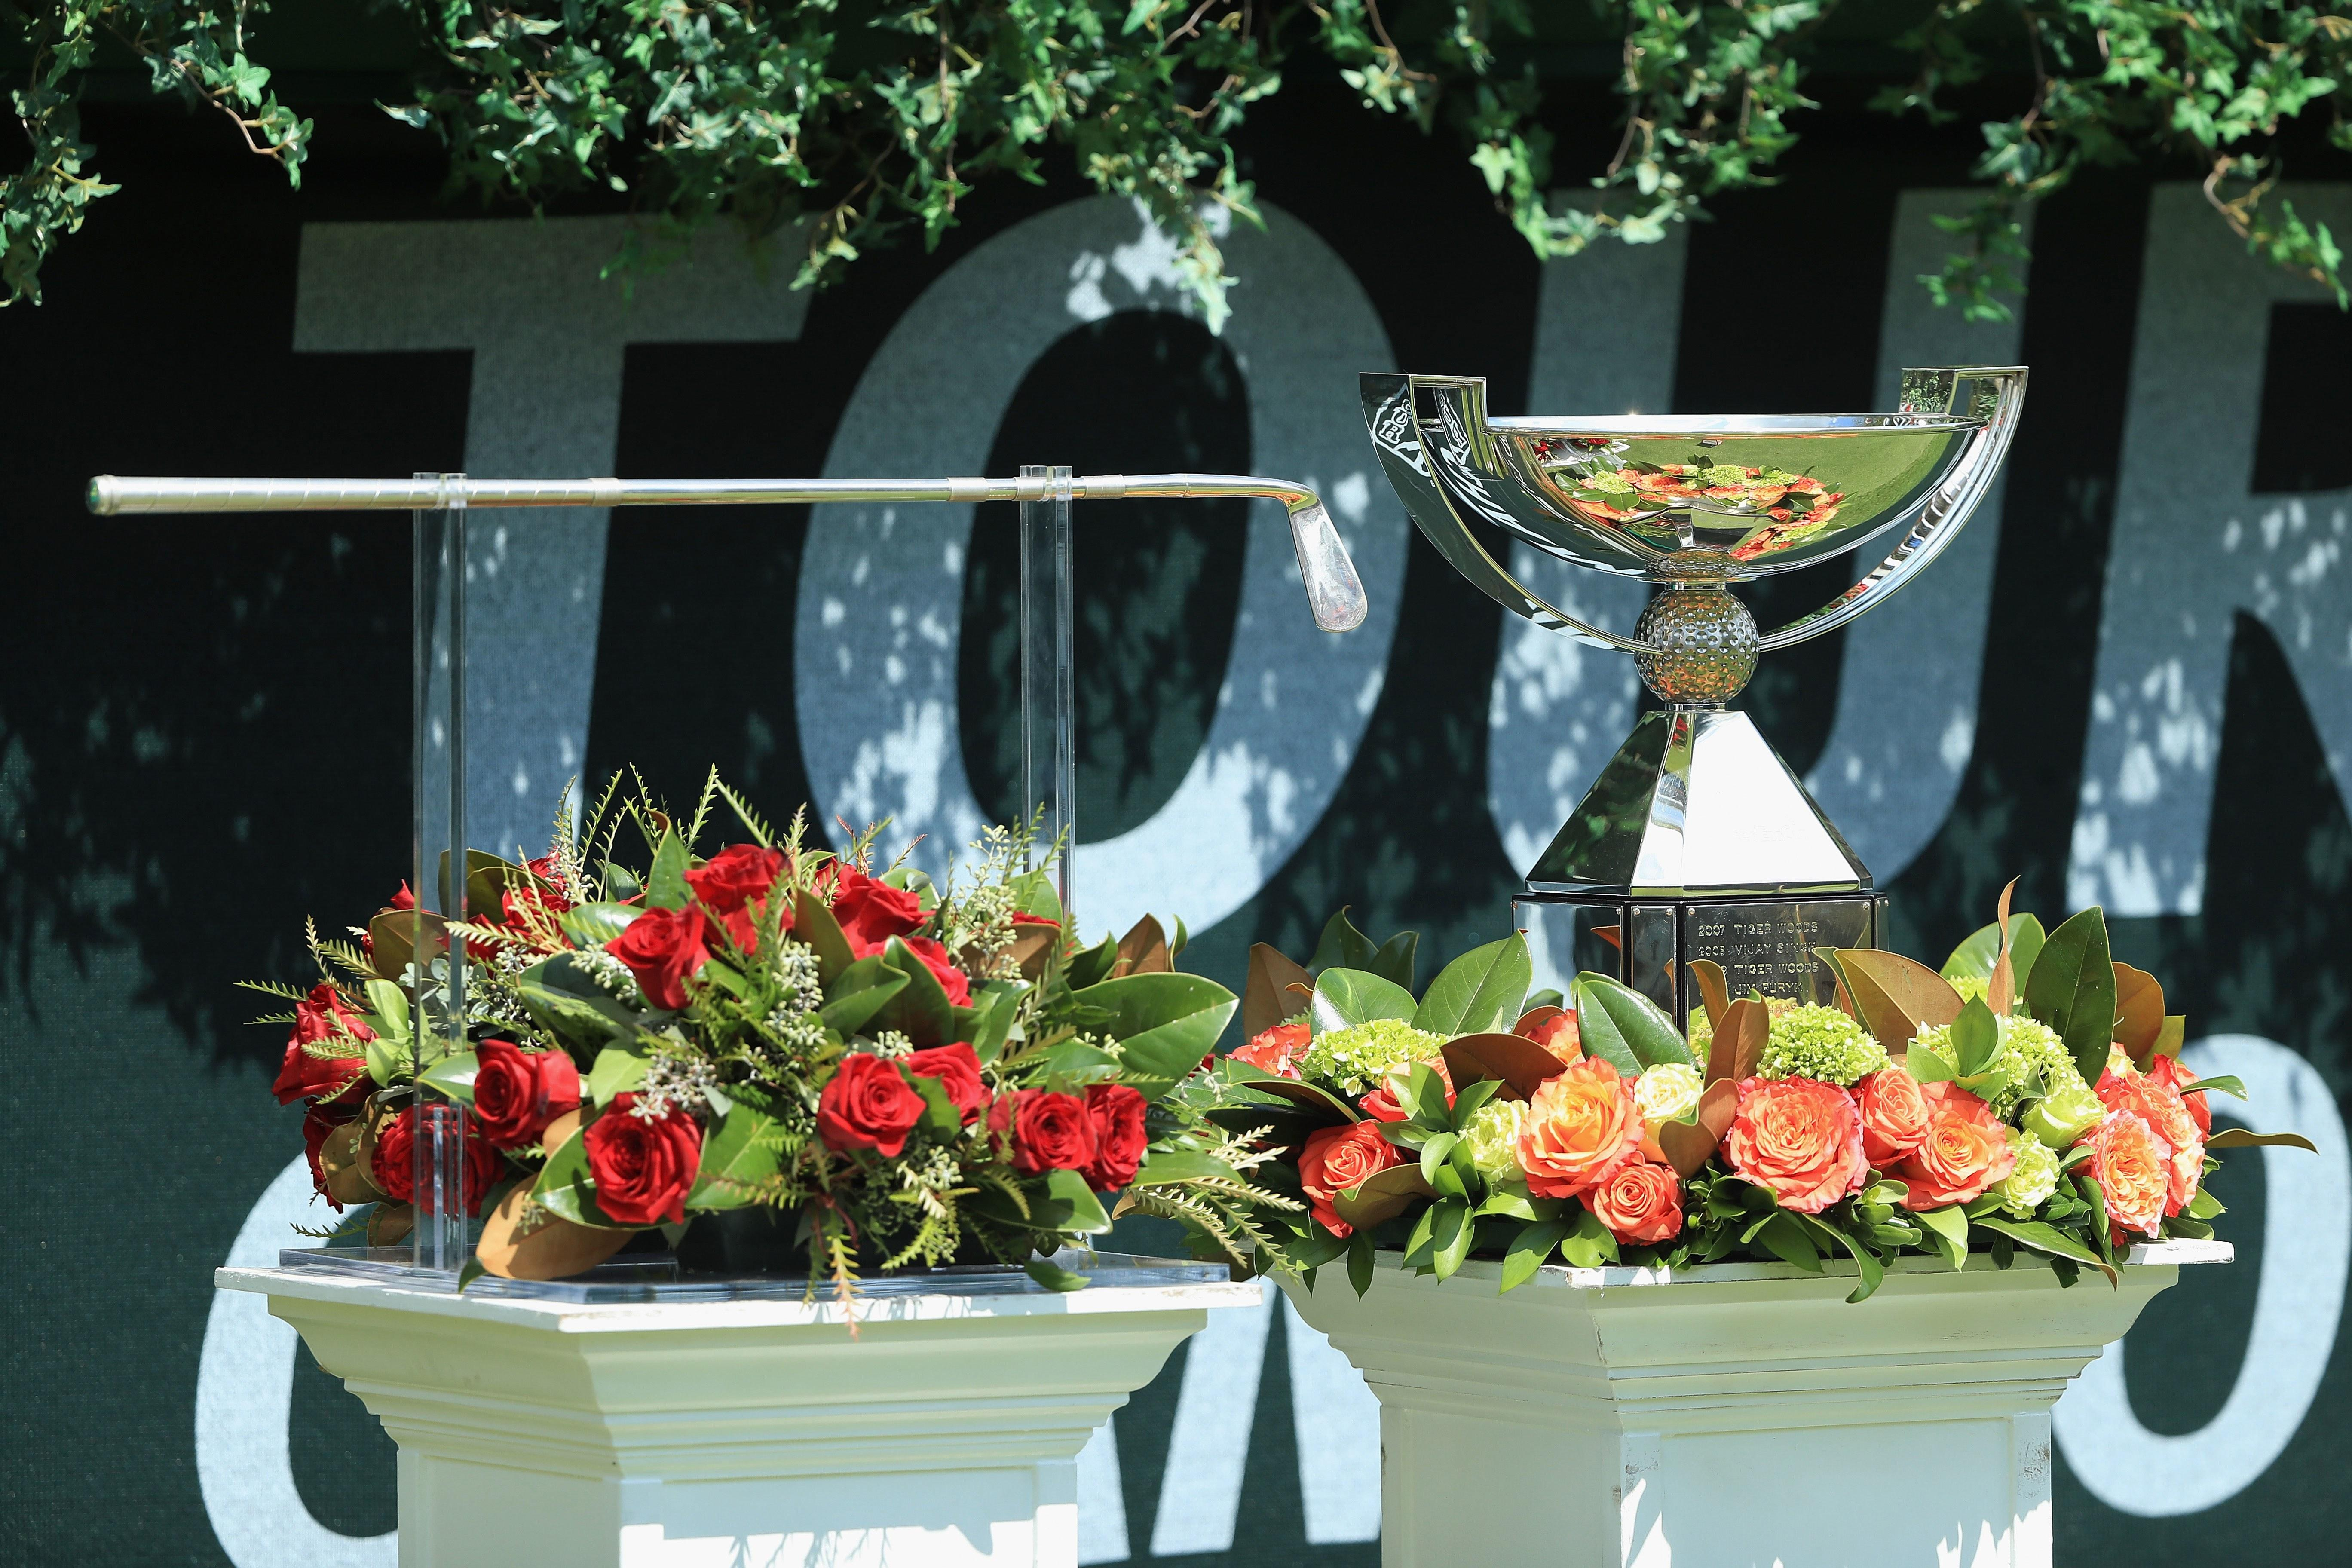 How much prize money each golfer earned at the 2018 Tour Championship